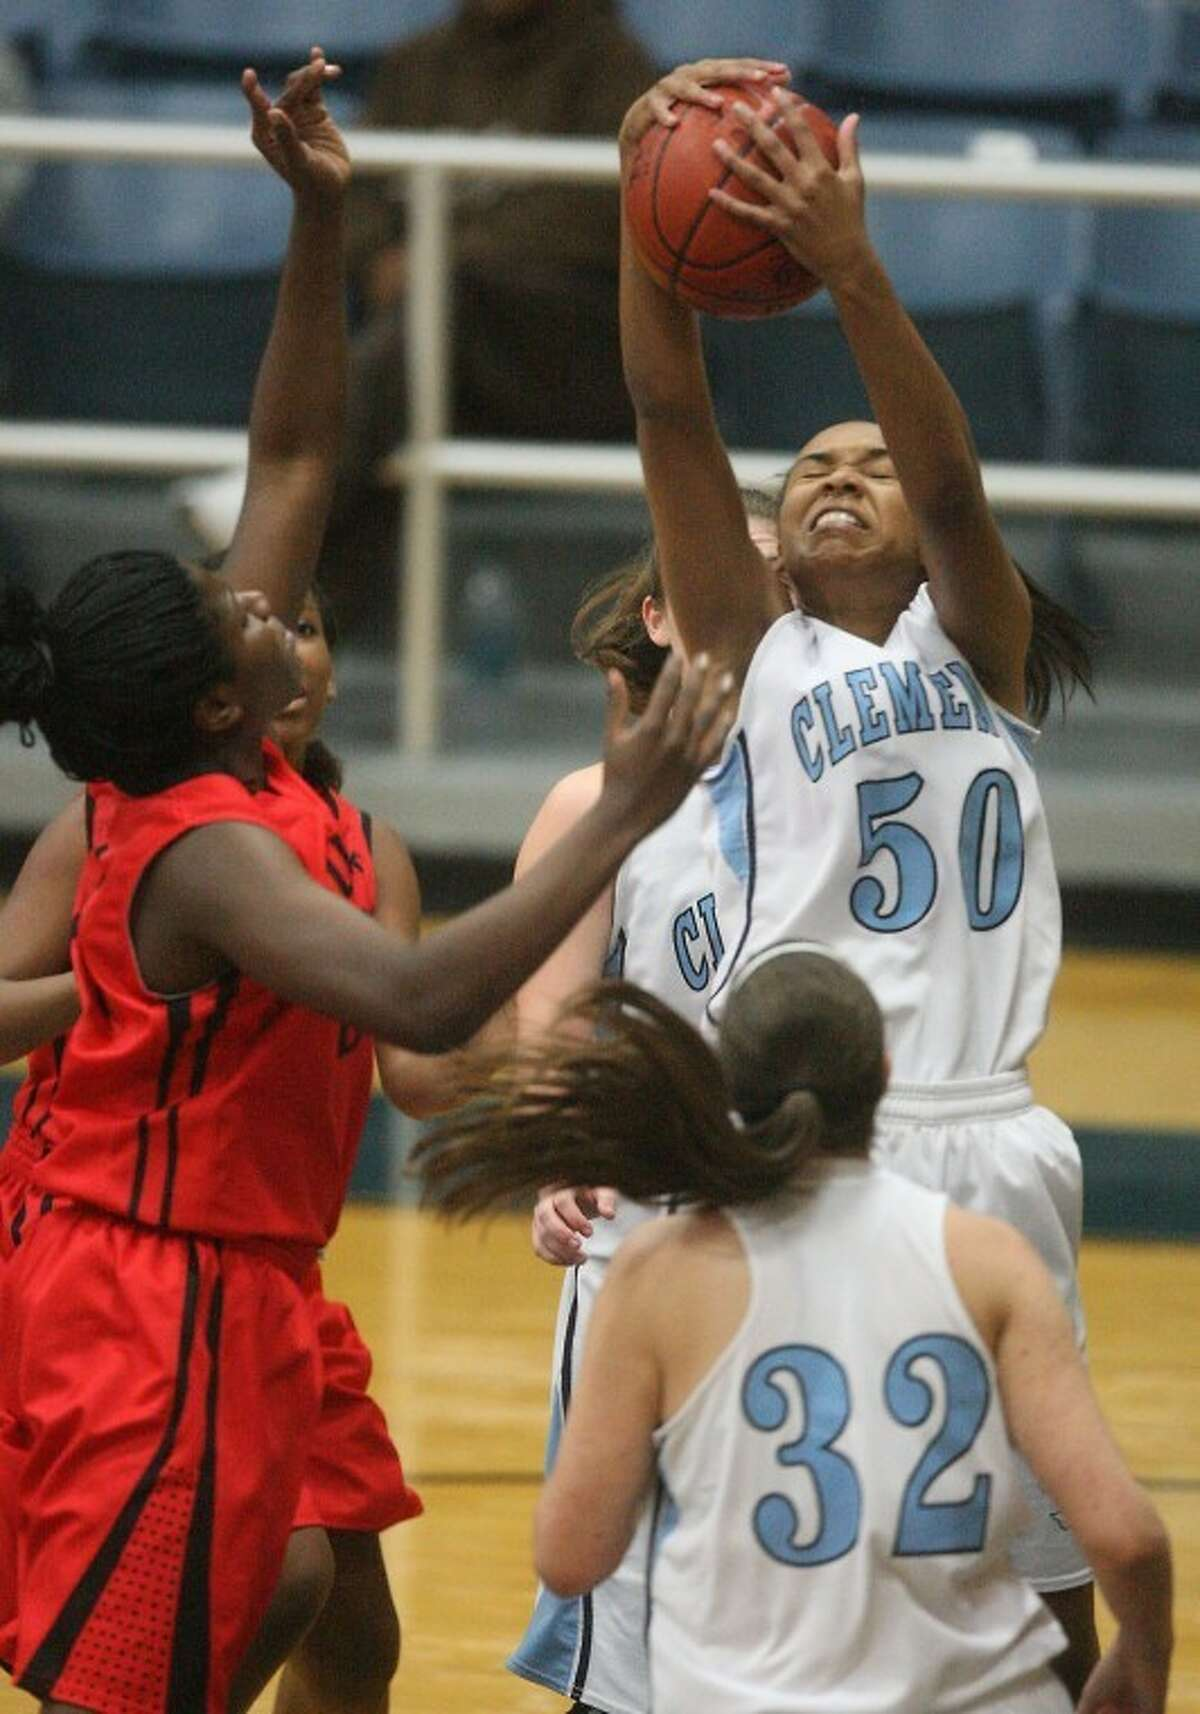 Madison Wilson scored a game-high 23 points for Clements, but the Lady Rangers fell to Austin at Wheeler Field House. (Photo by Patric Schneider)